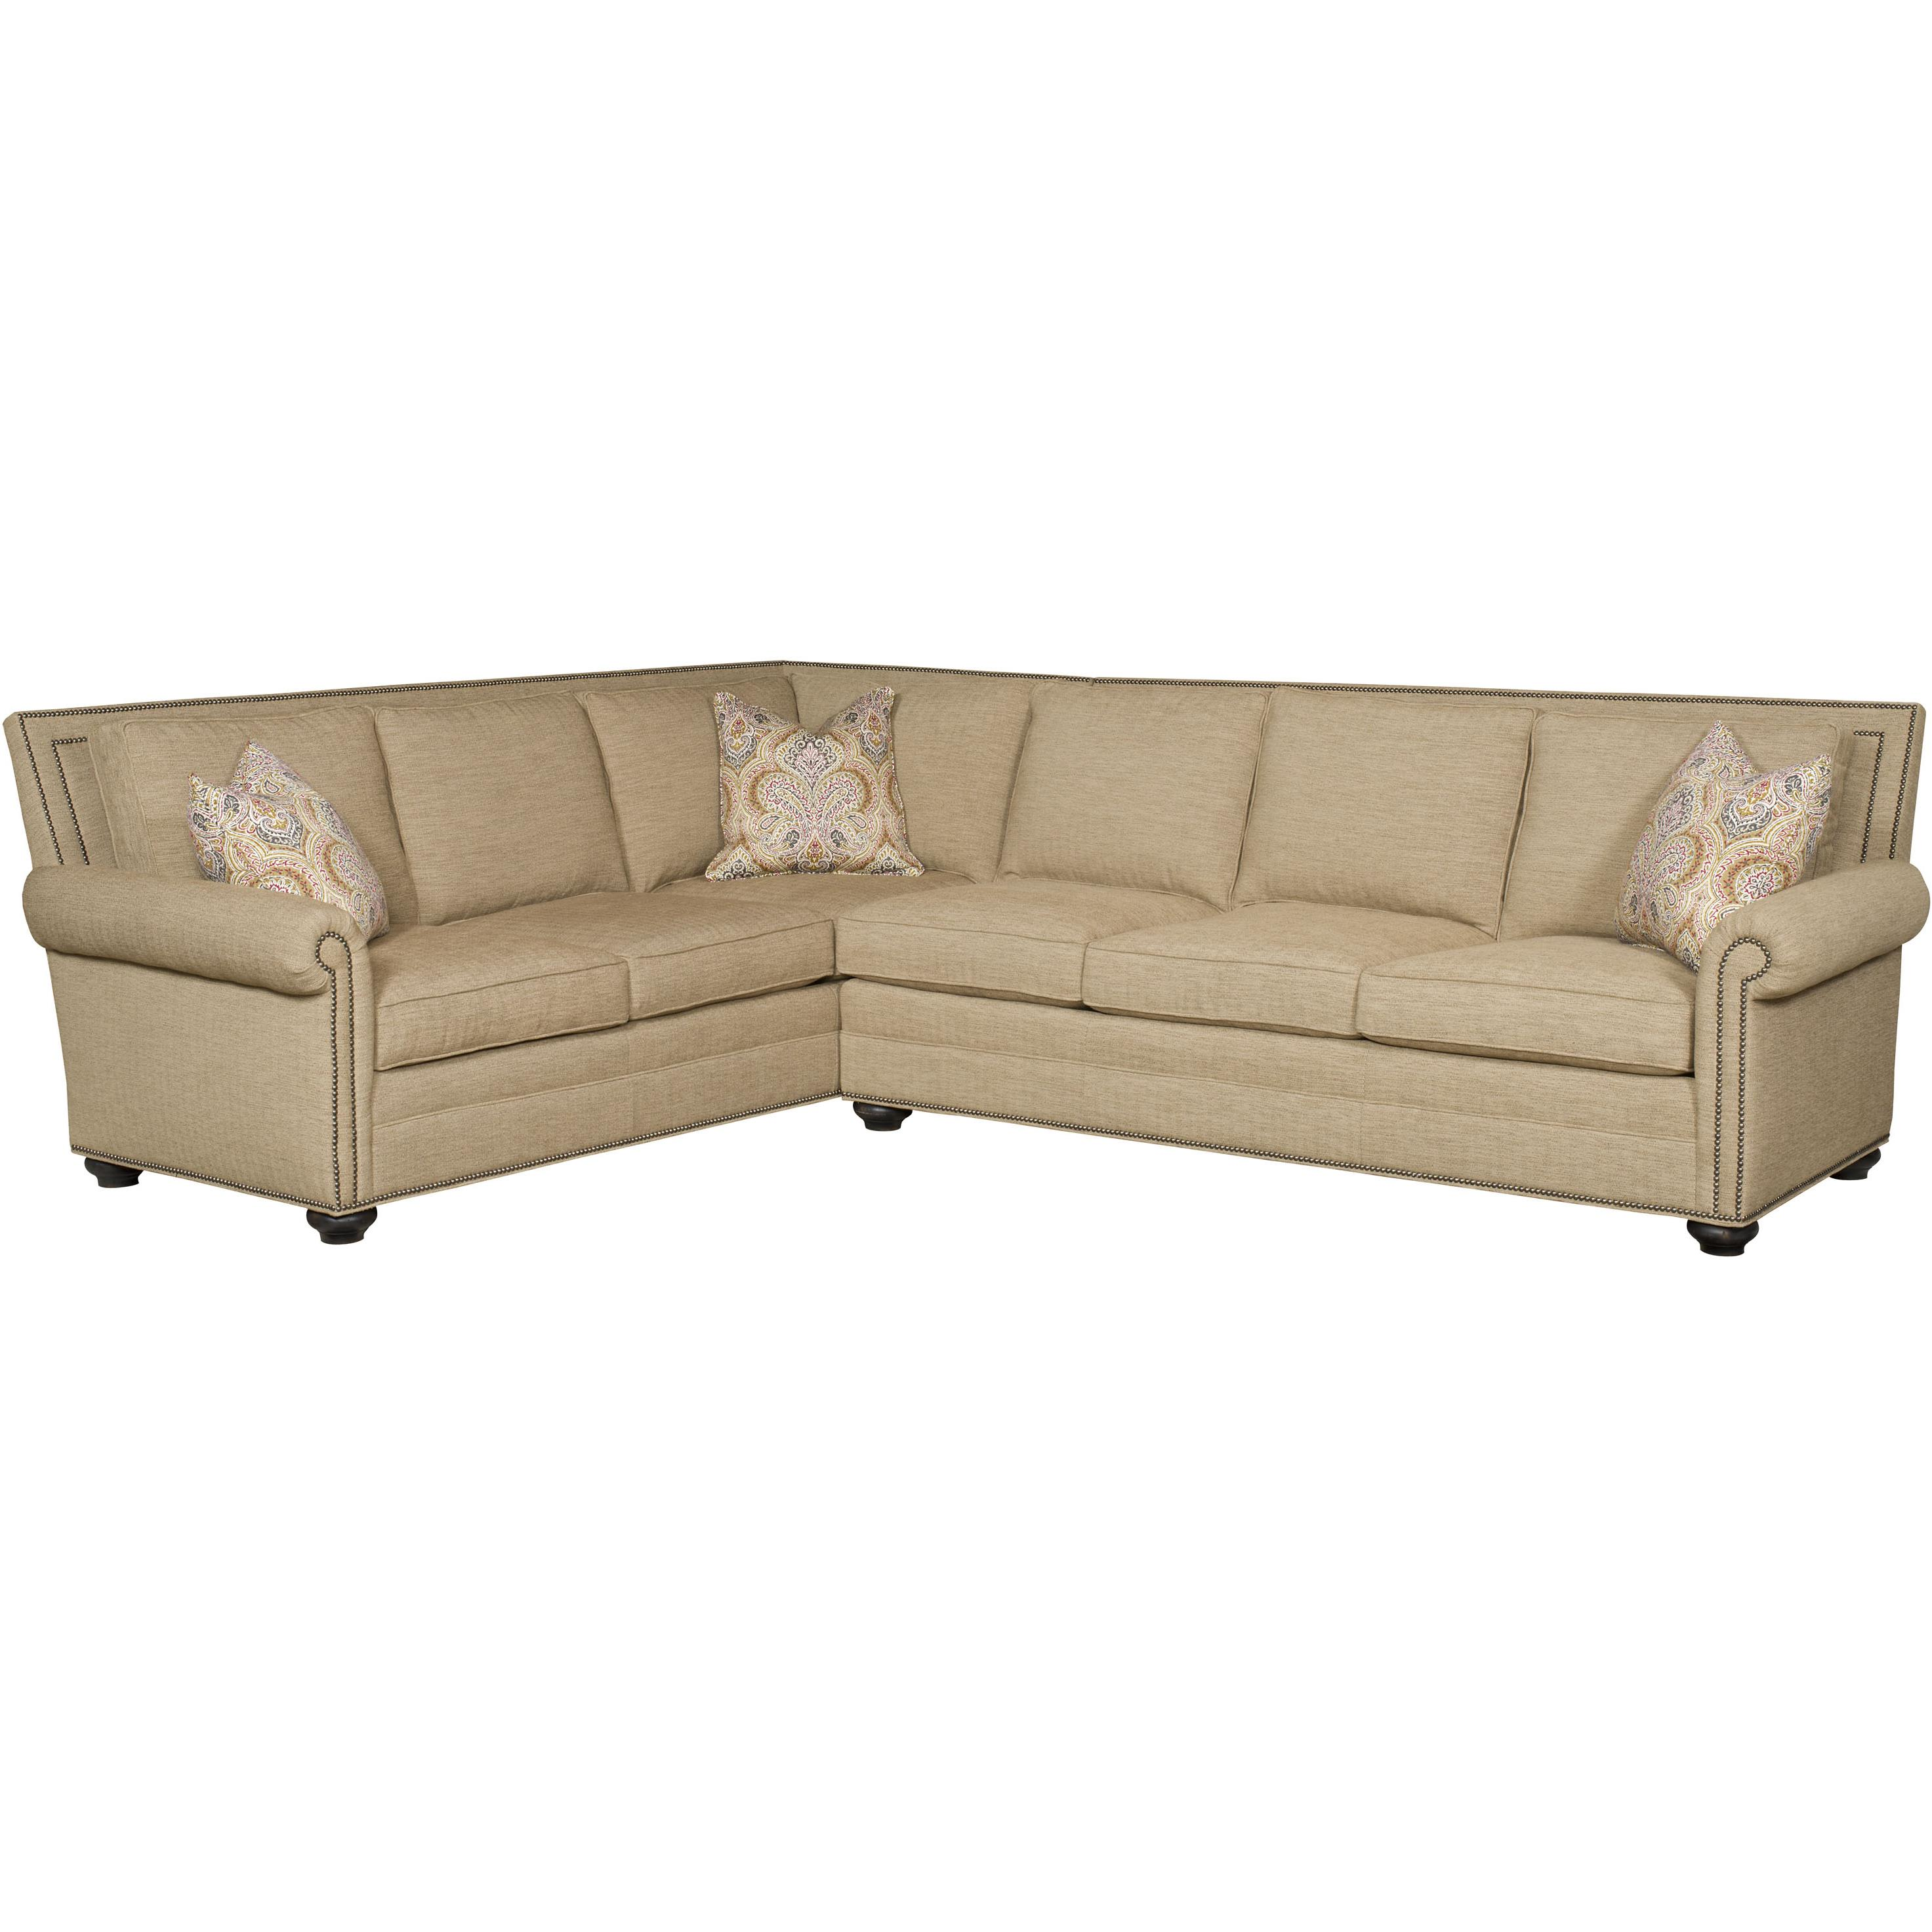 Simpson Traditional Sectional by Vanguard Furniture at Baer's Furniture